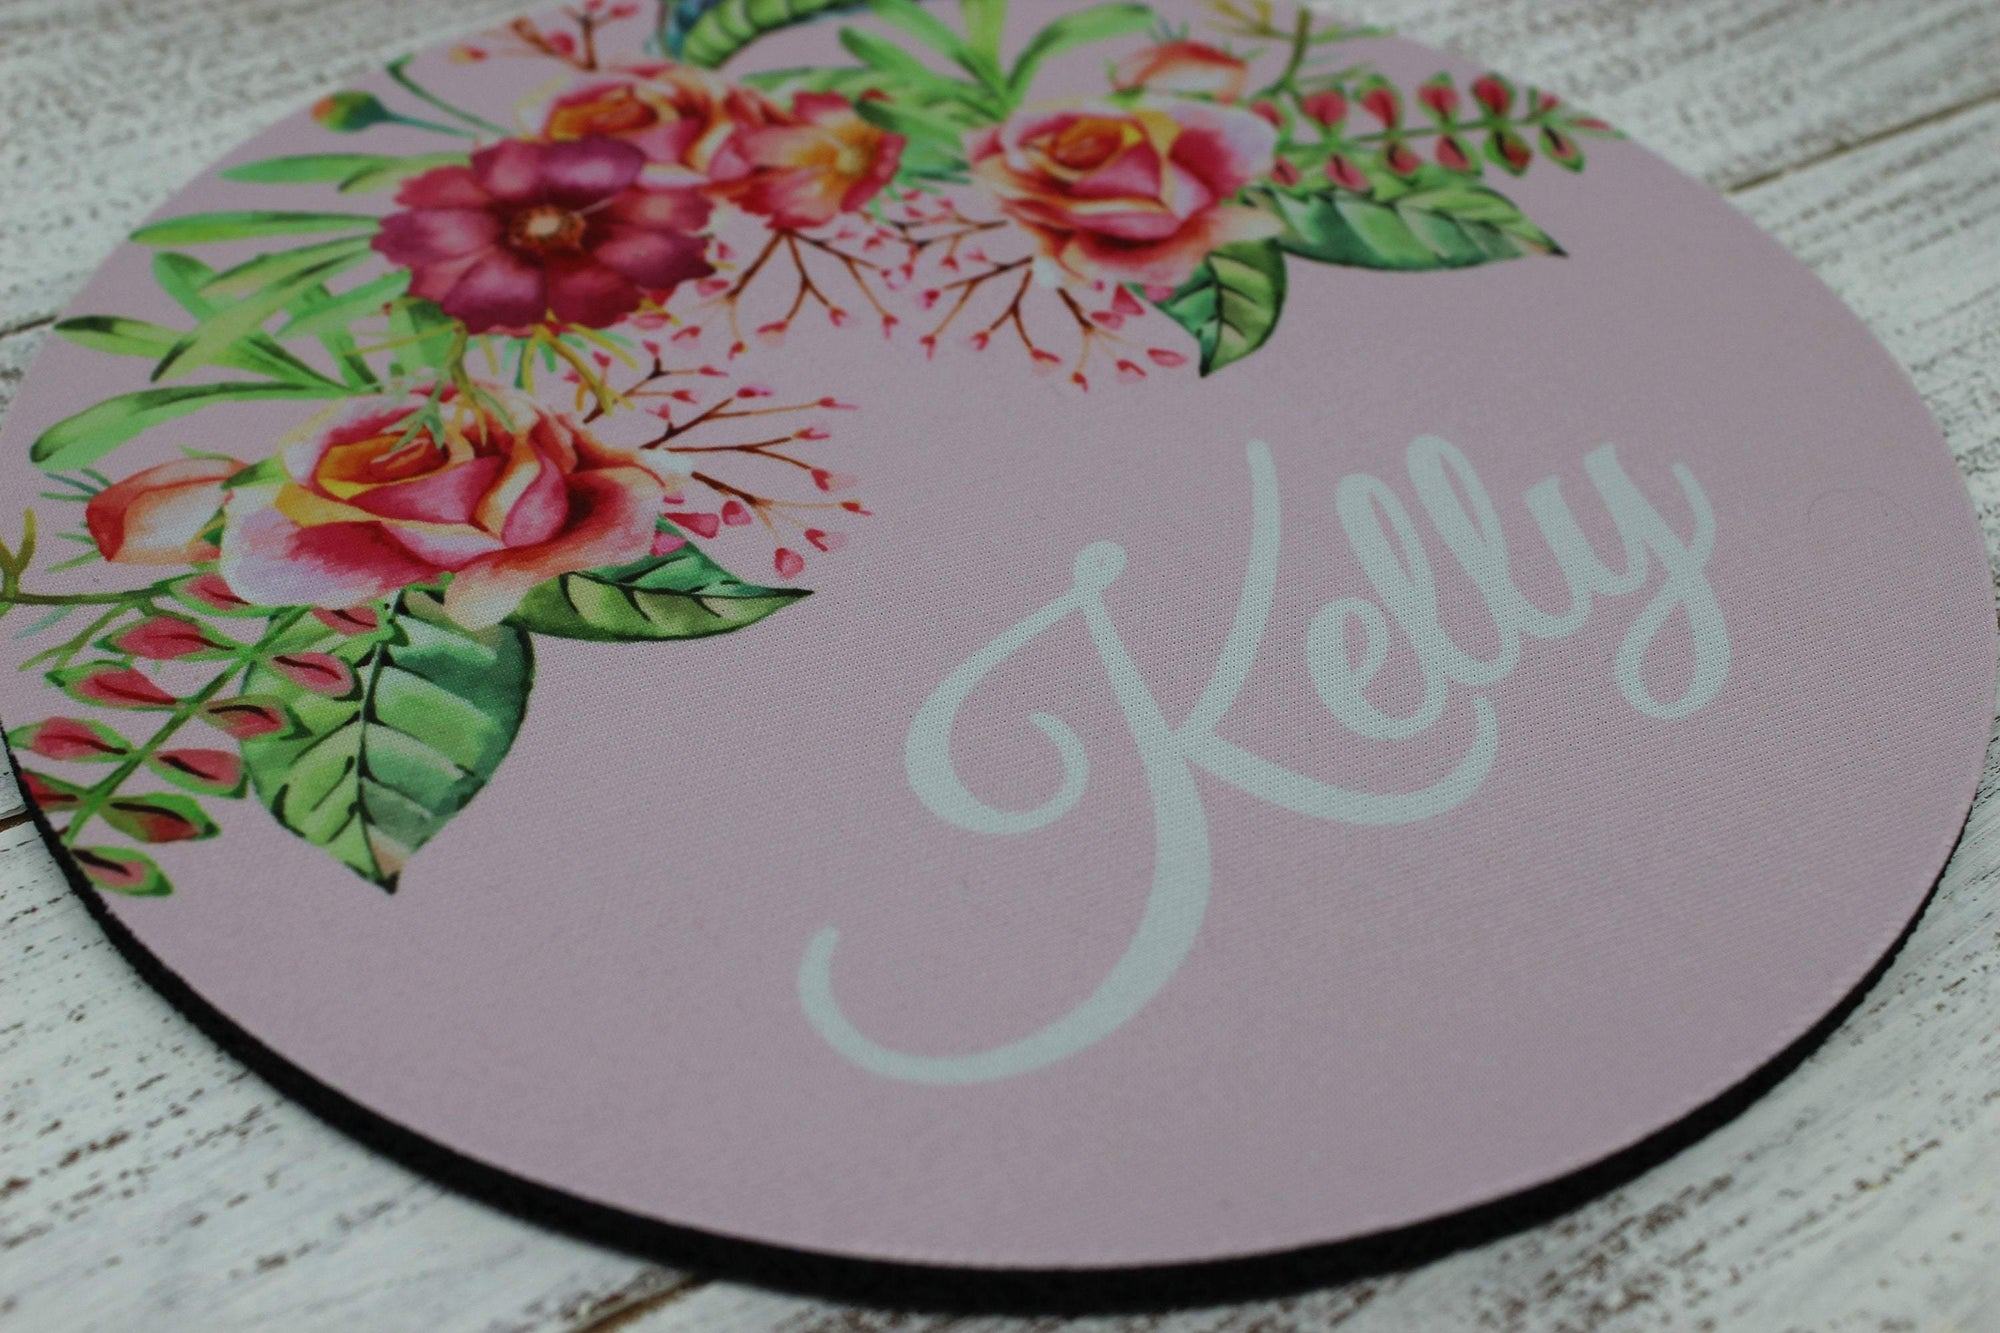 Mousepads | Monogrammed Mouse Pad | Personalized Mouse Pad | Floral | This and That Solutions | Personalized Gifts | Custom Home Décor